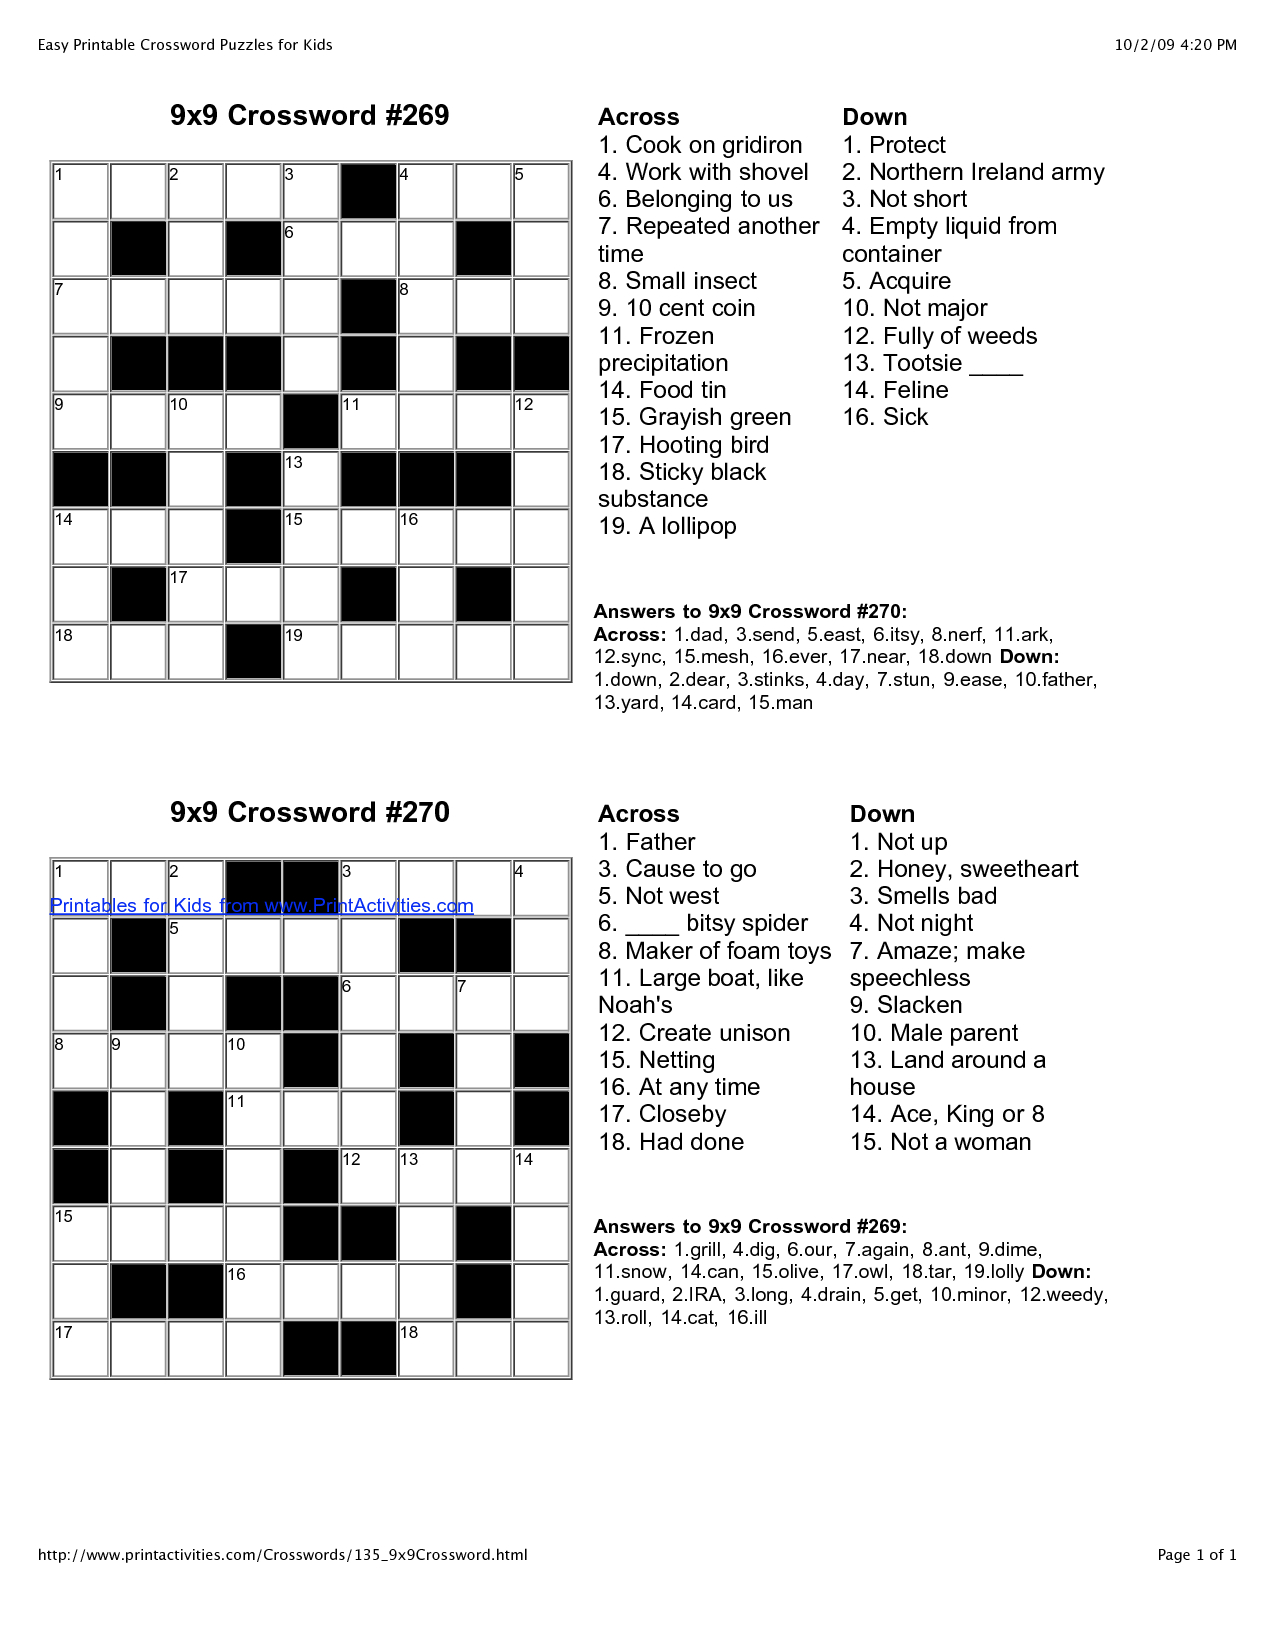 Easy Crossword Puzzles | I'm Going To Be An Slp! | Kids Crossword - Joseph Crossword Puzzles Printable